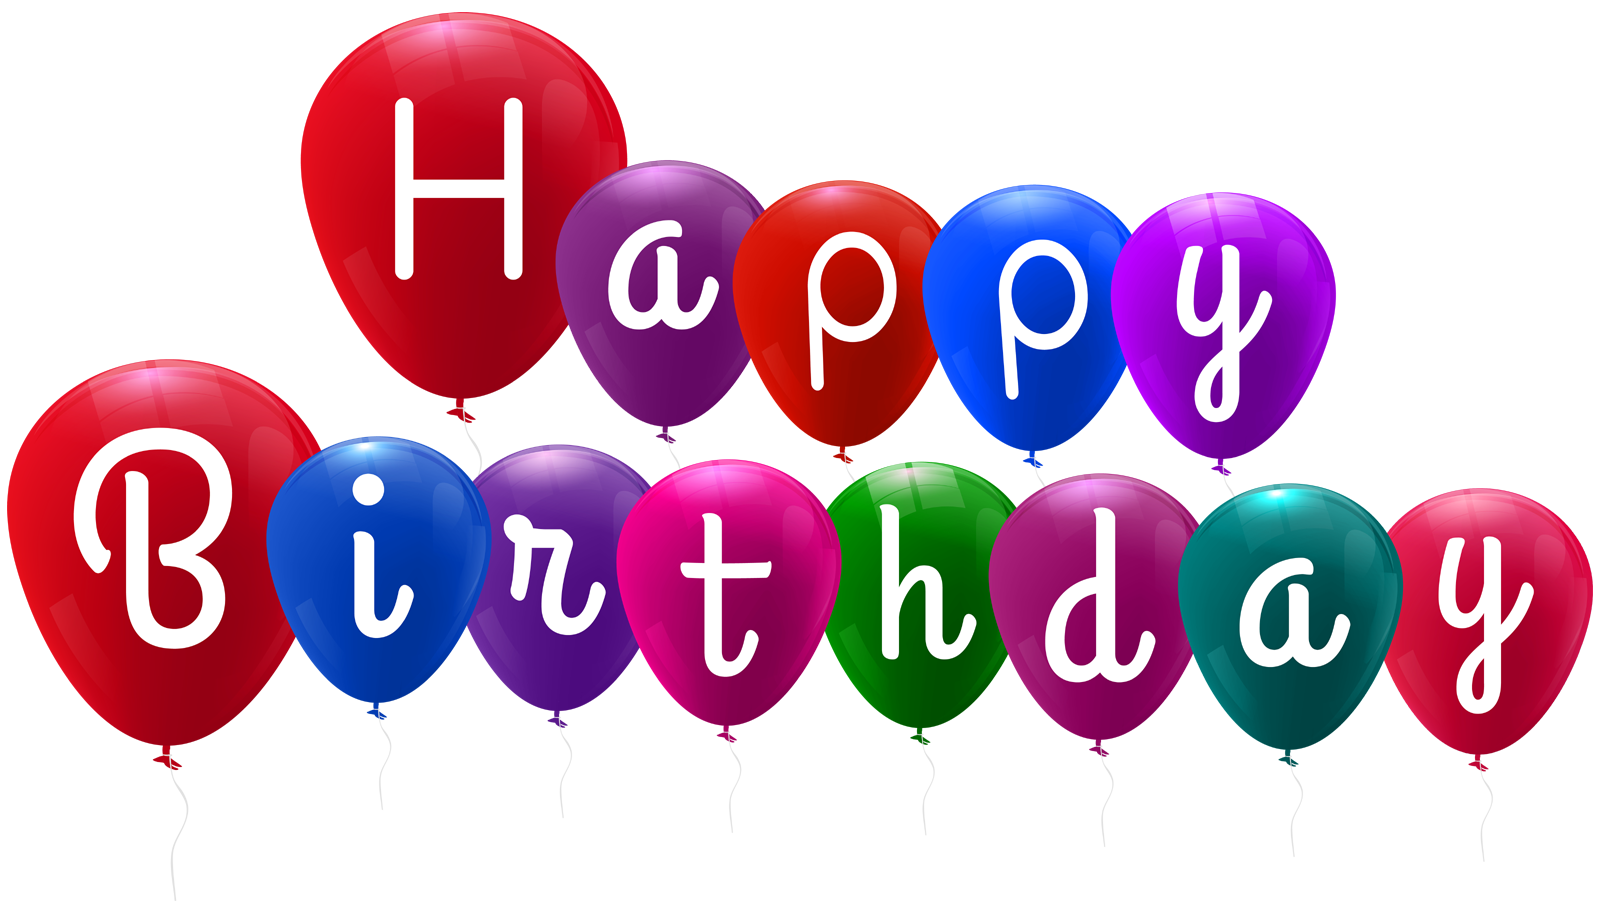 happy birthday text art design free